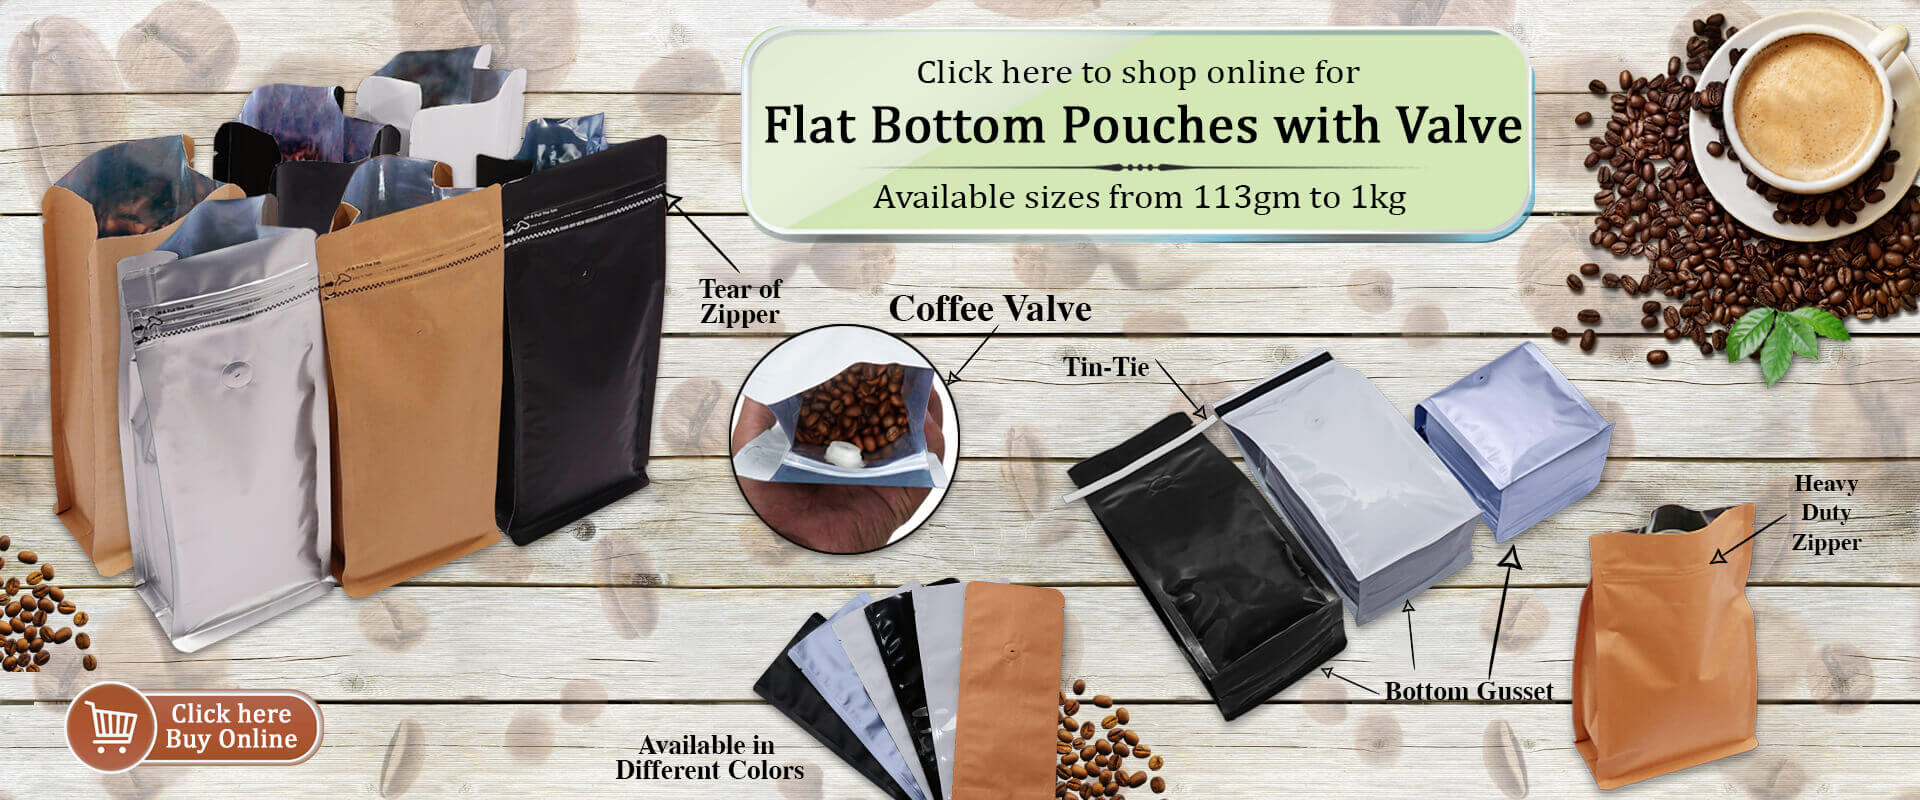 Flat Bottom Pouches With Valve PouchMakers